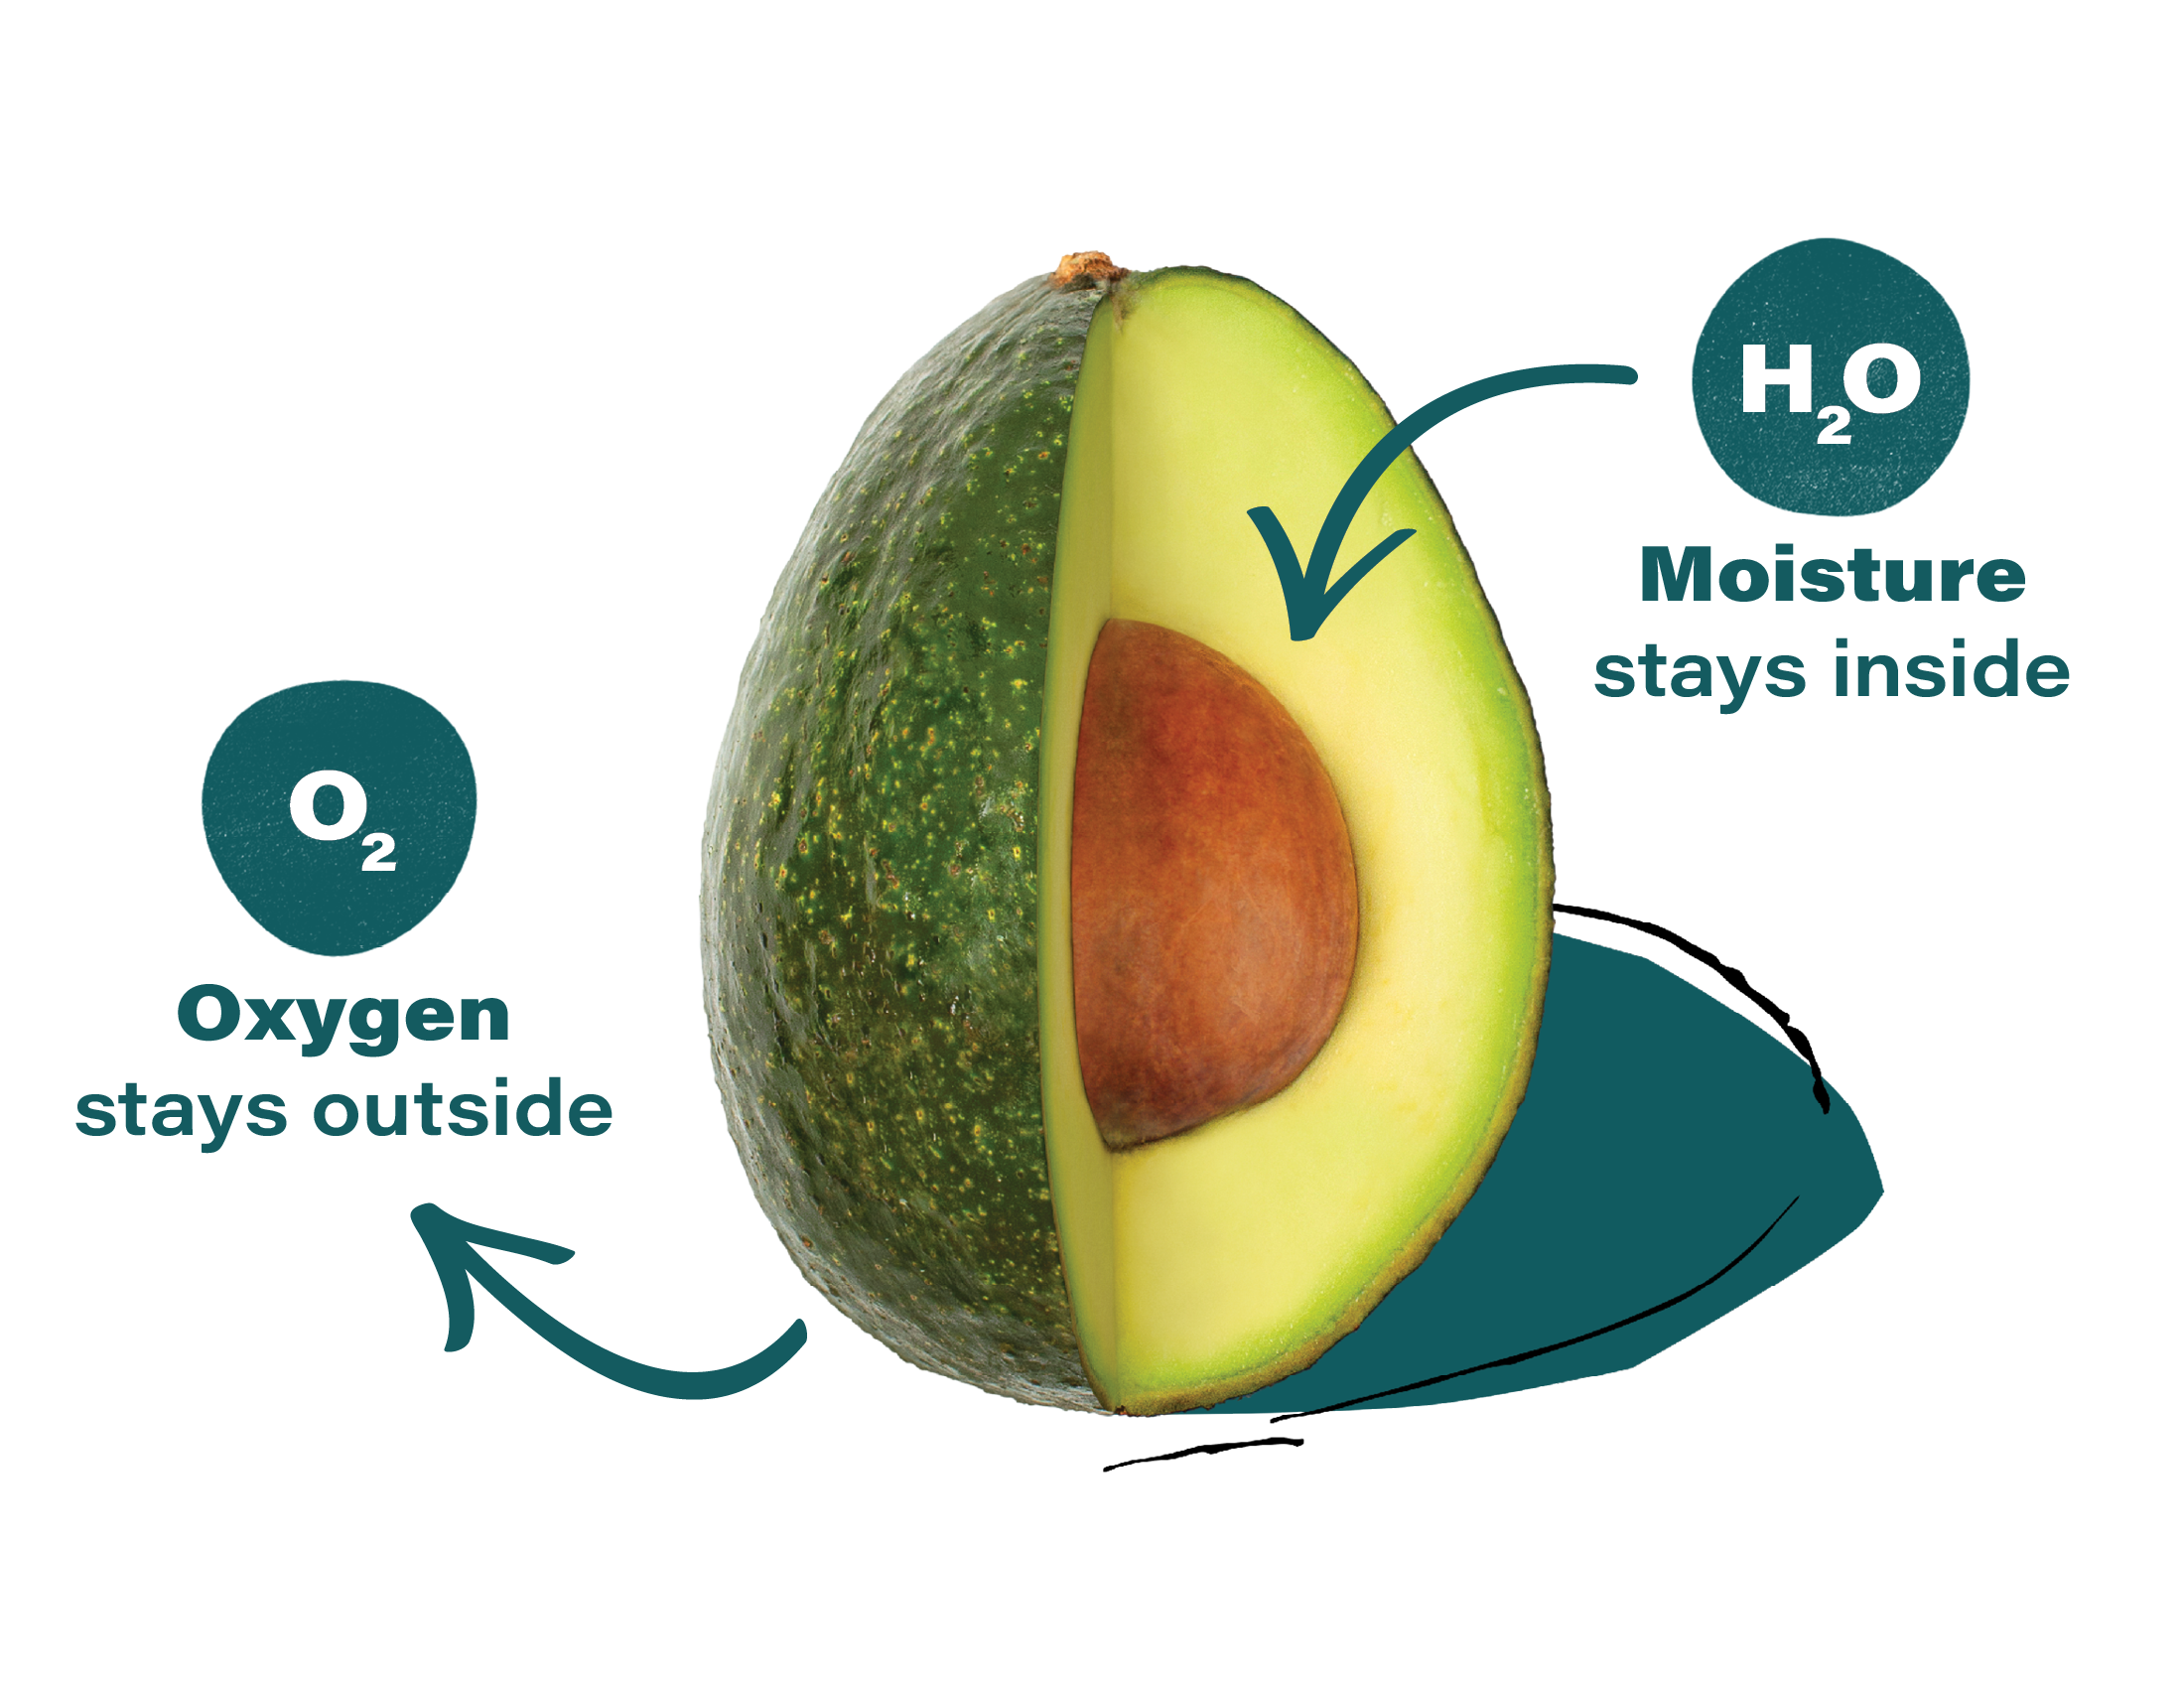 Apeel-Avocado-Produce-Diagrams-2020-FINAL (1)